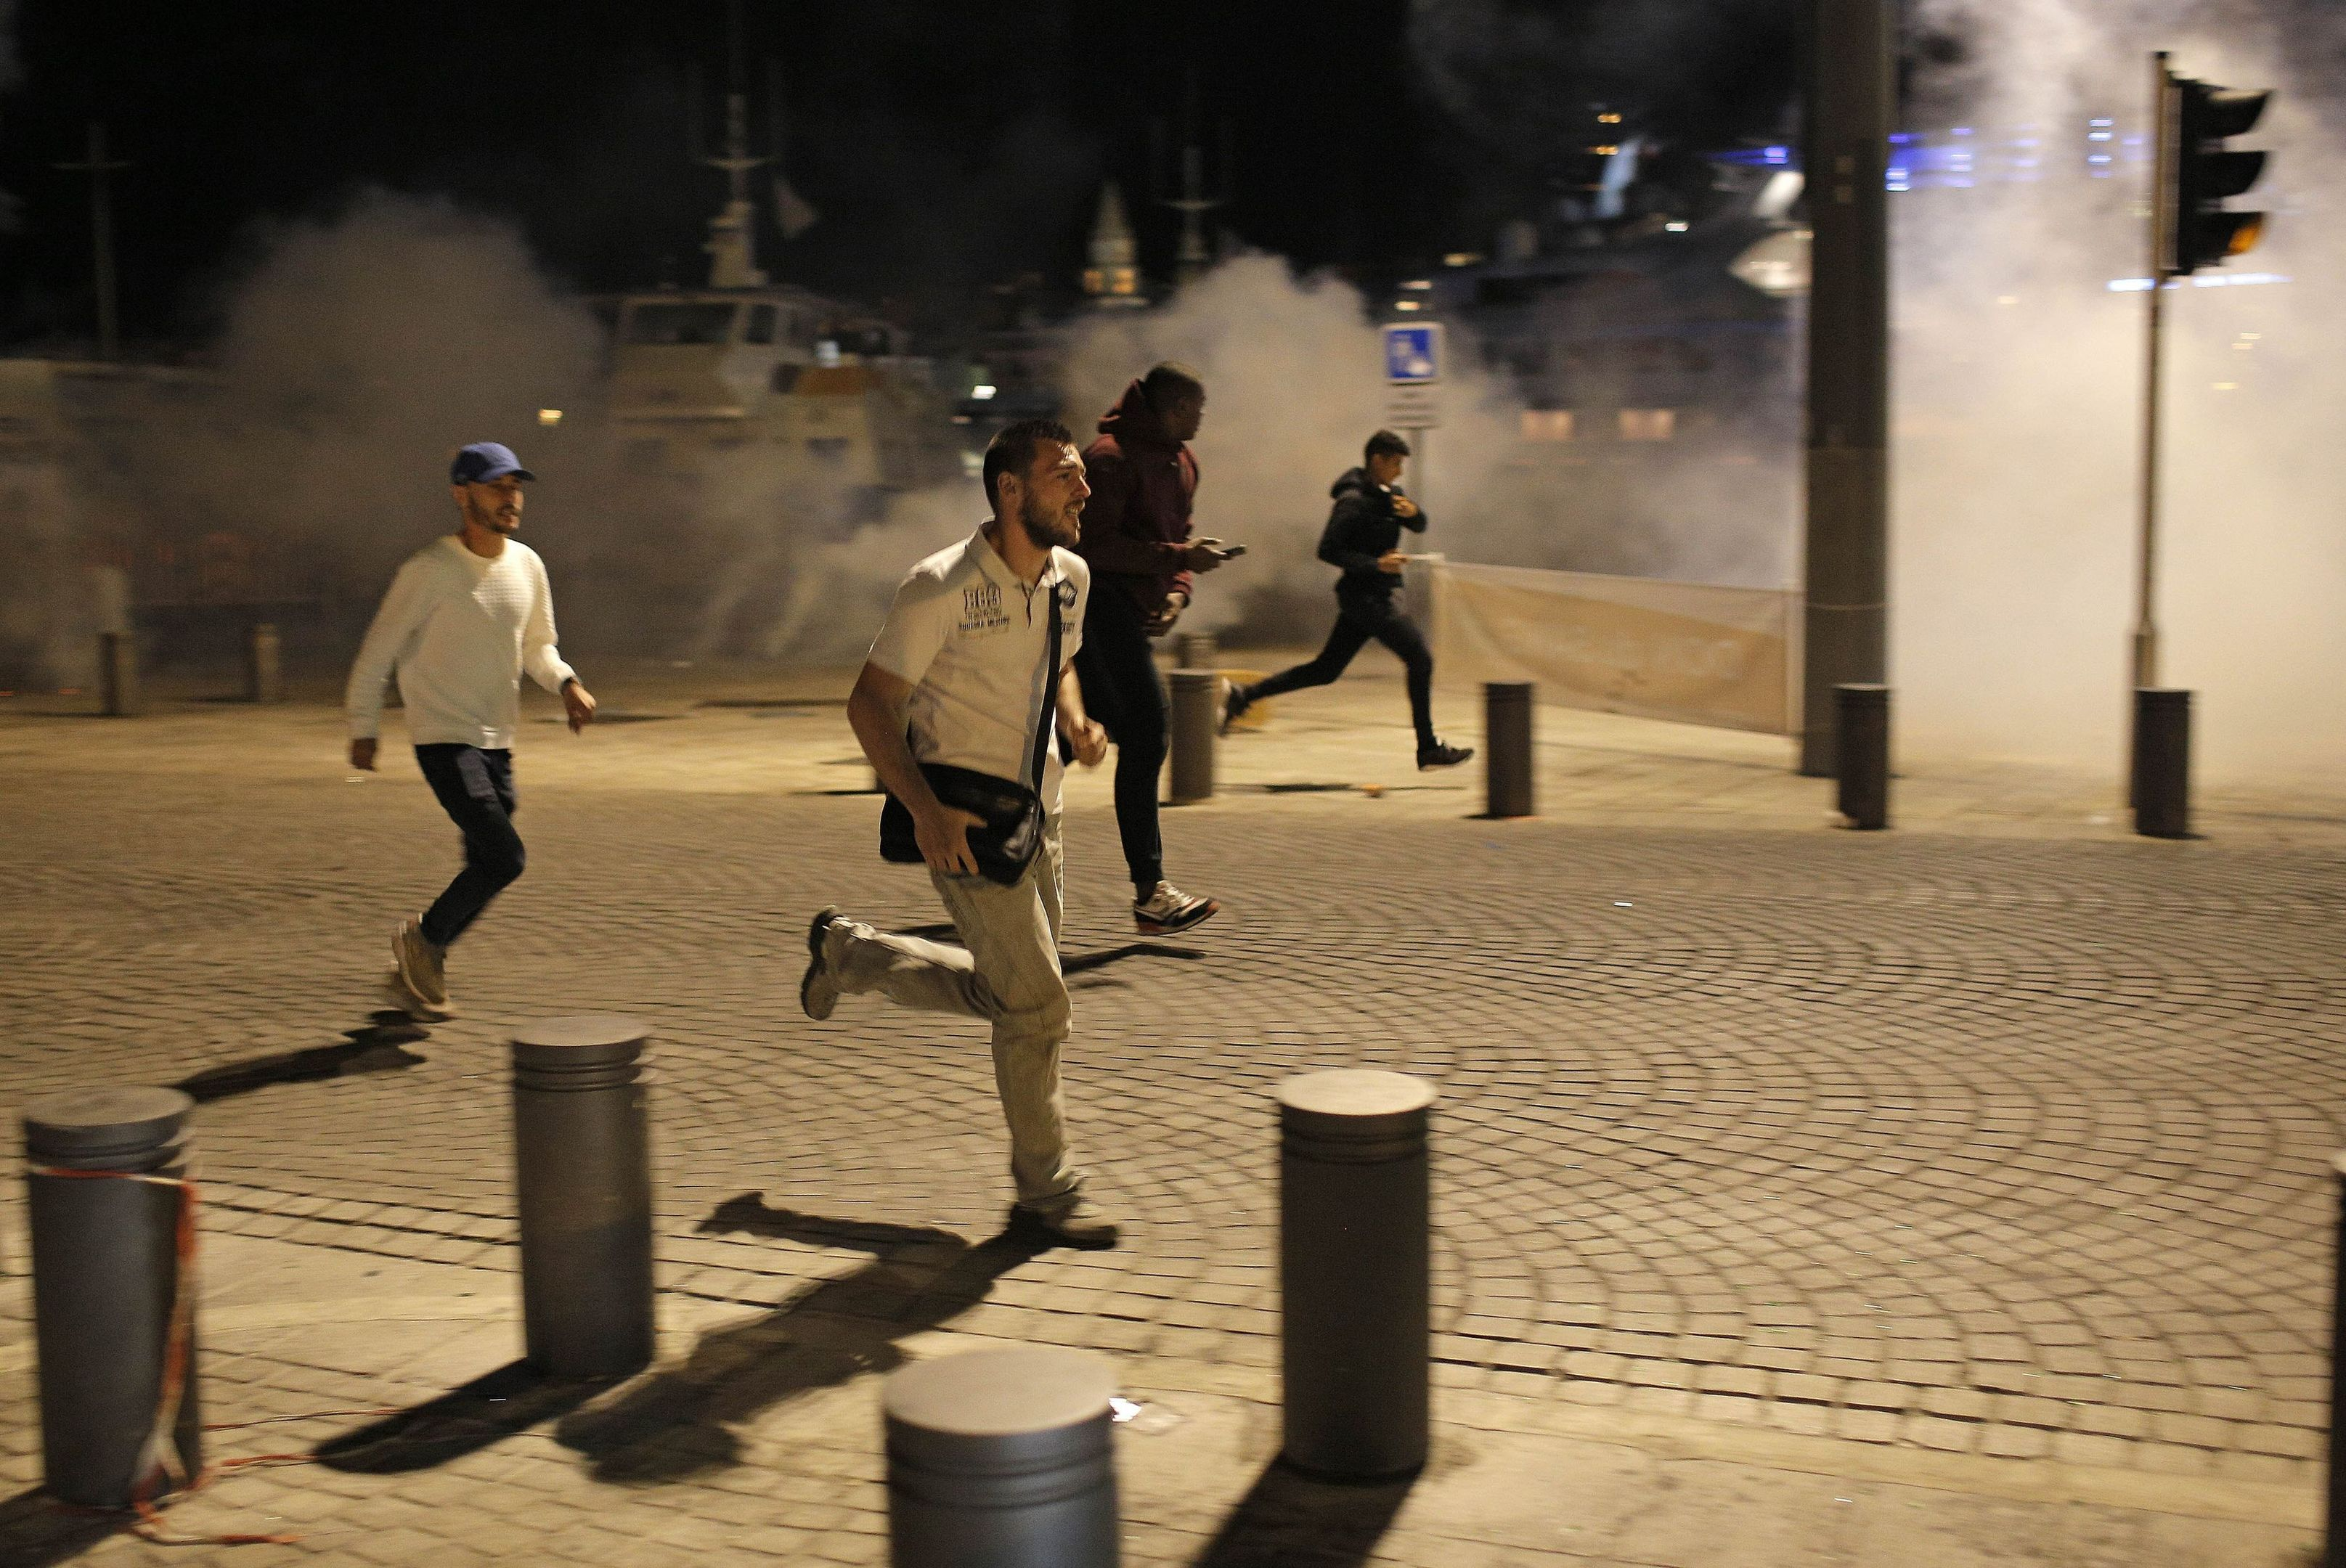 People run through the streets of Marseille after police fired tear gas following the match between England and Russia.